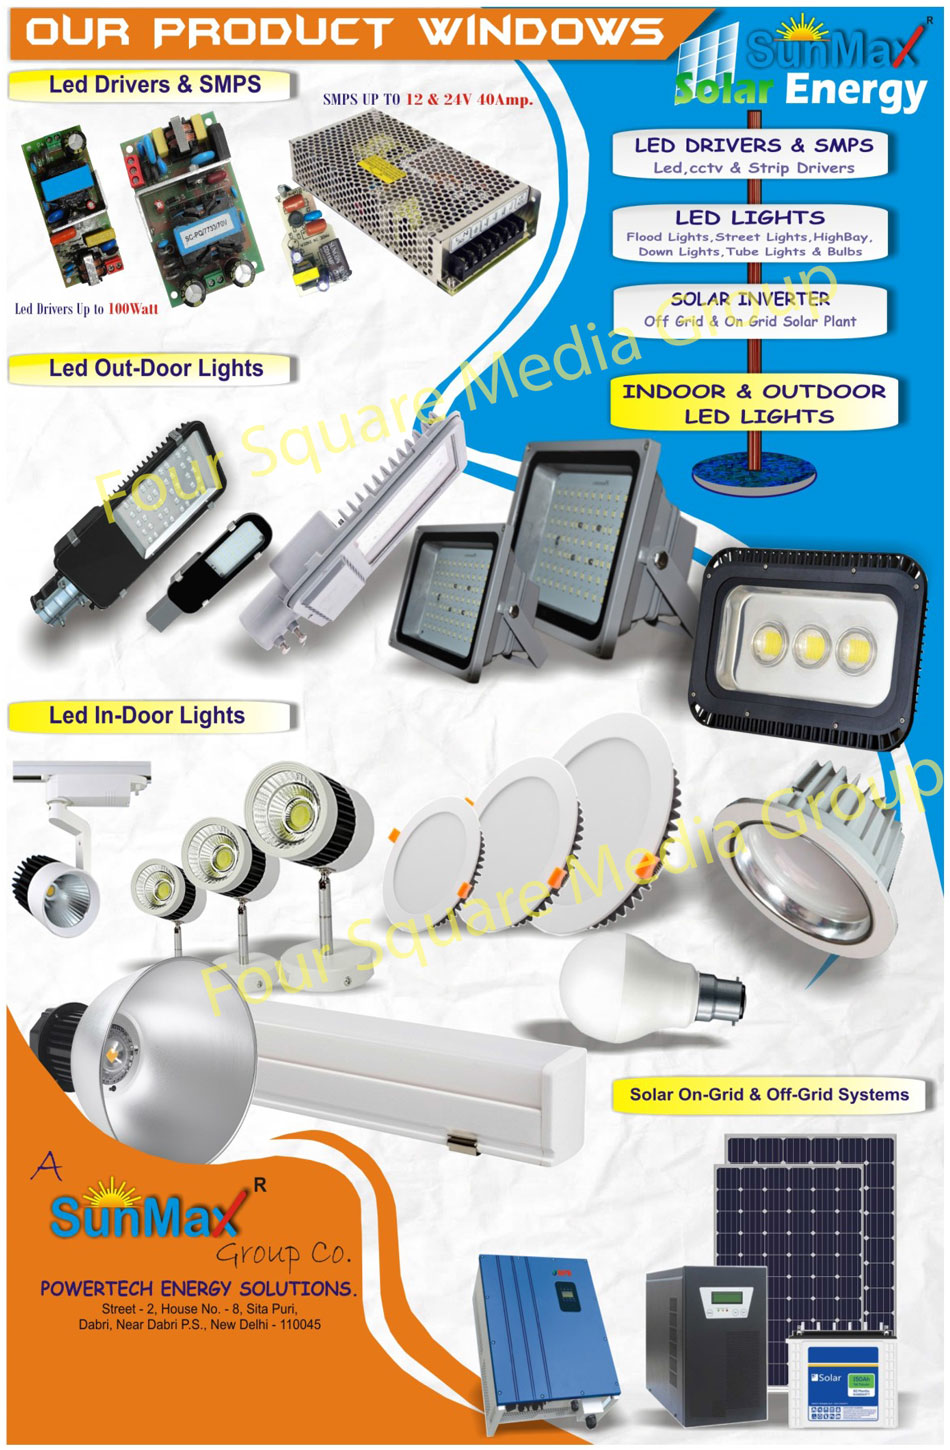 Led Lights, Solar Lights, Solar Inverters, FTL Fittings, Indoor Lights, Outdoor Lights, Electronic Blast, Gear Box, Electronic Control Gear Box, Led Drivers, Led Tubes, Led Bulbs, Electronic Accessories, Electronic Luminaries, Fancy Led Products, Street Lights, Indoor Led Lights, Outdoor Led Lights, Led Drivers, Led Indoor Lights, Led Outdoor Lights, HPF Driver For Led Bulbs